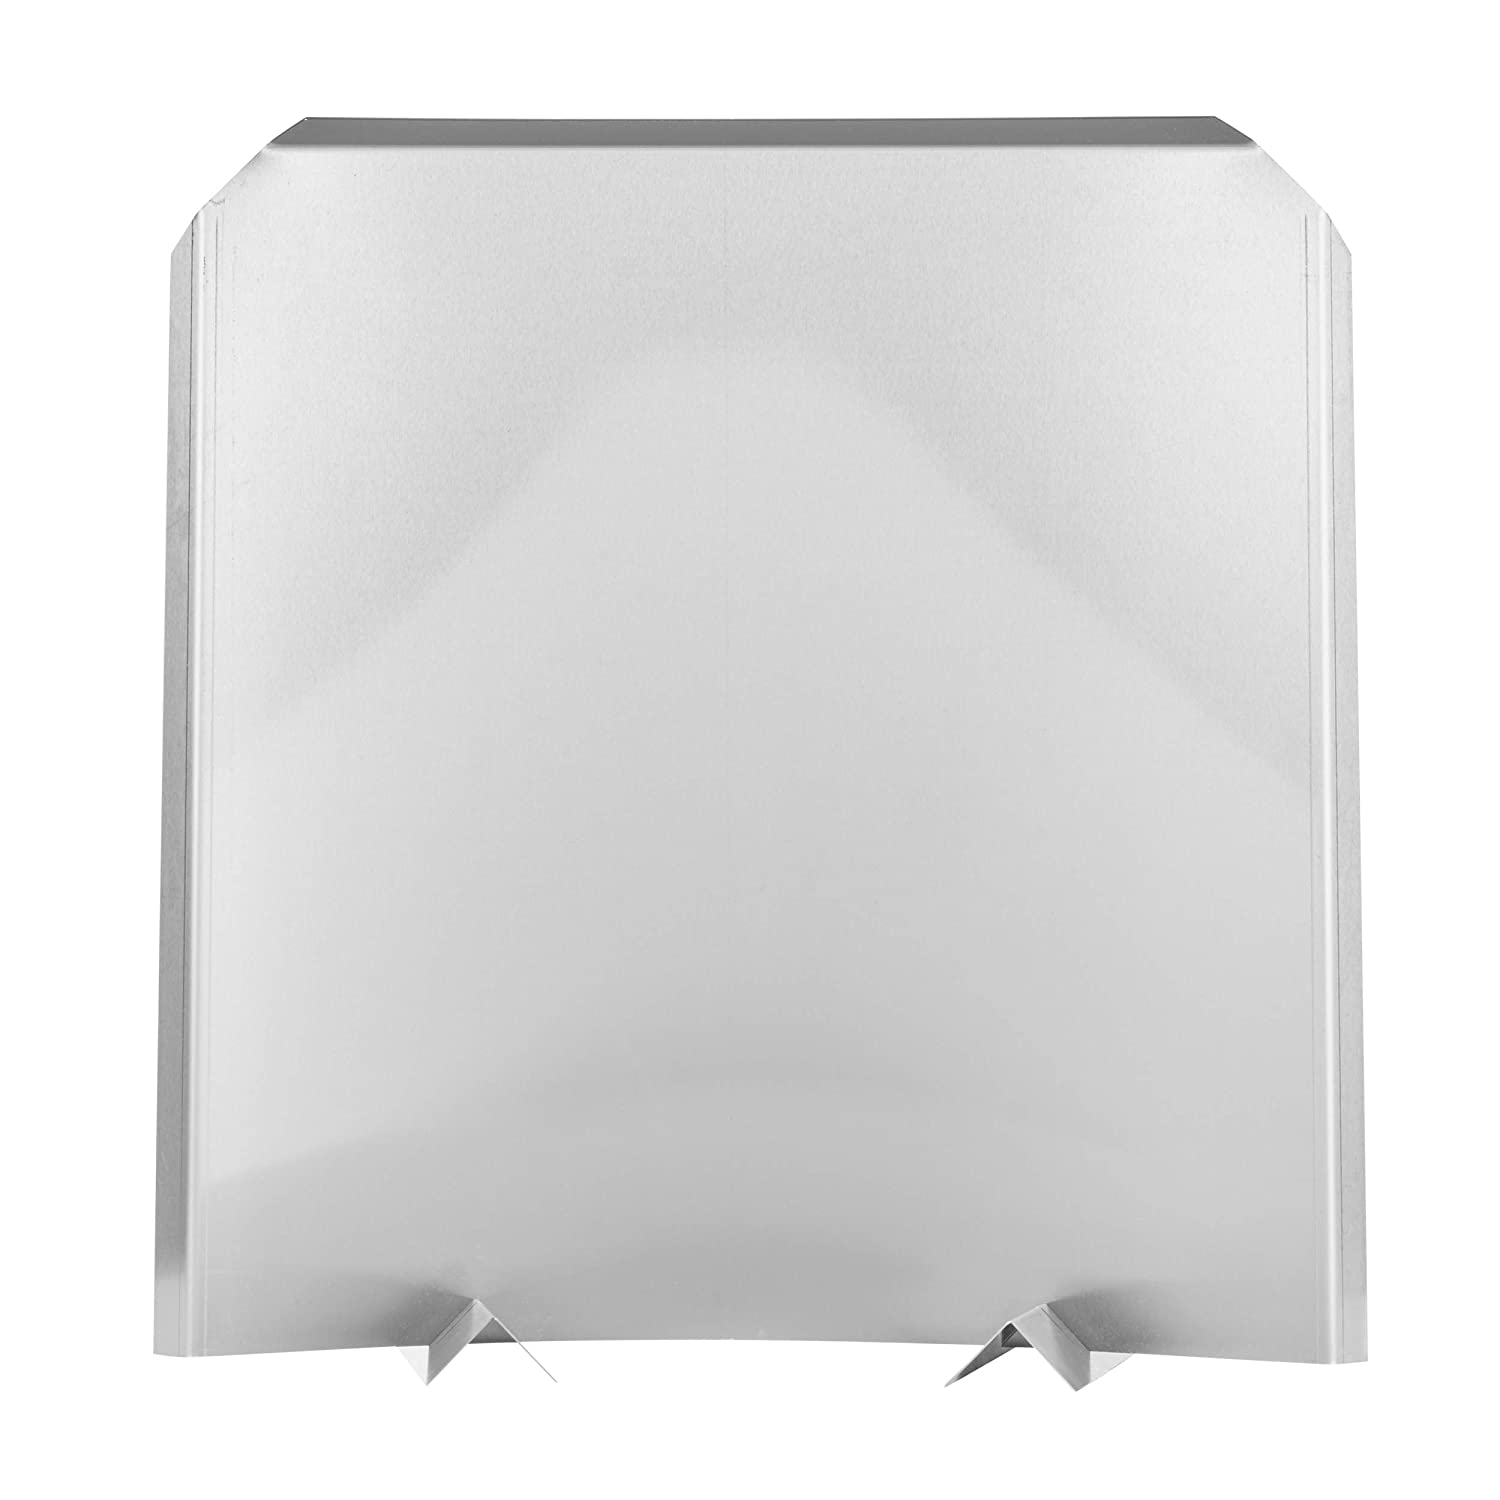 Stainless Steel Painted Black Protects Firebox Adjustable Installation HY-C FB1515 Fireback 15 x 15